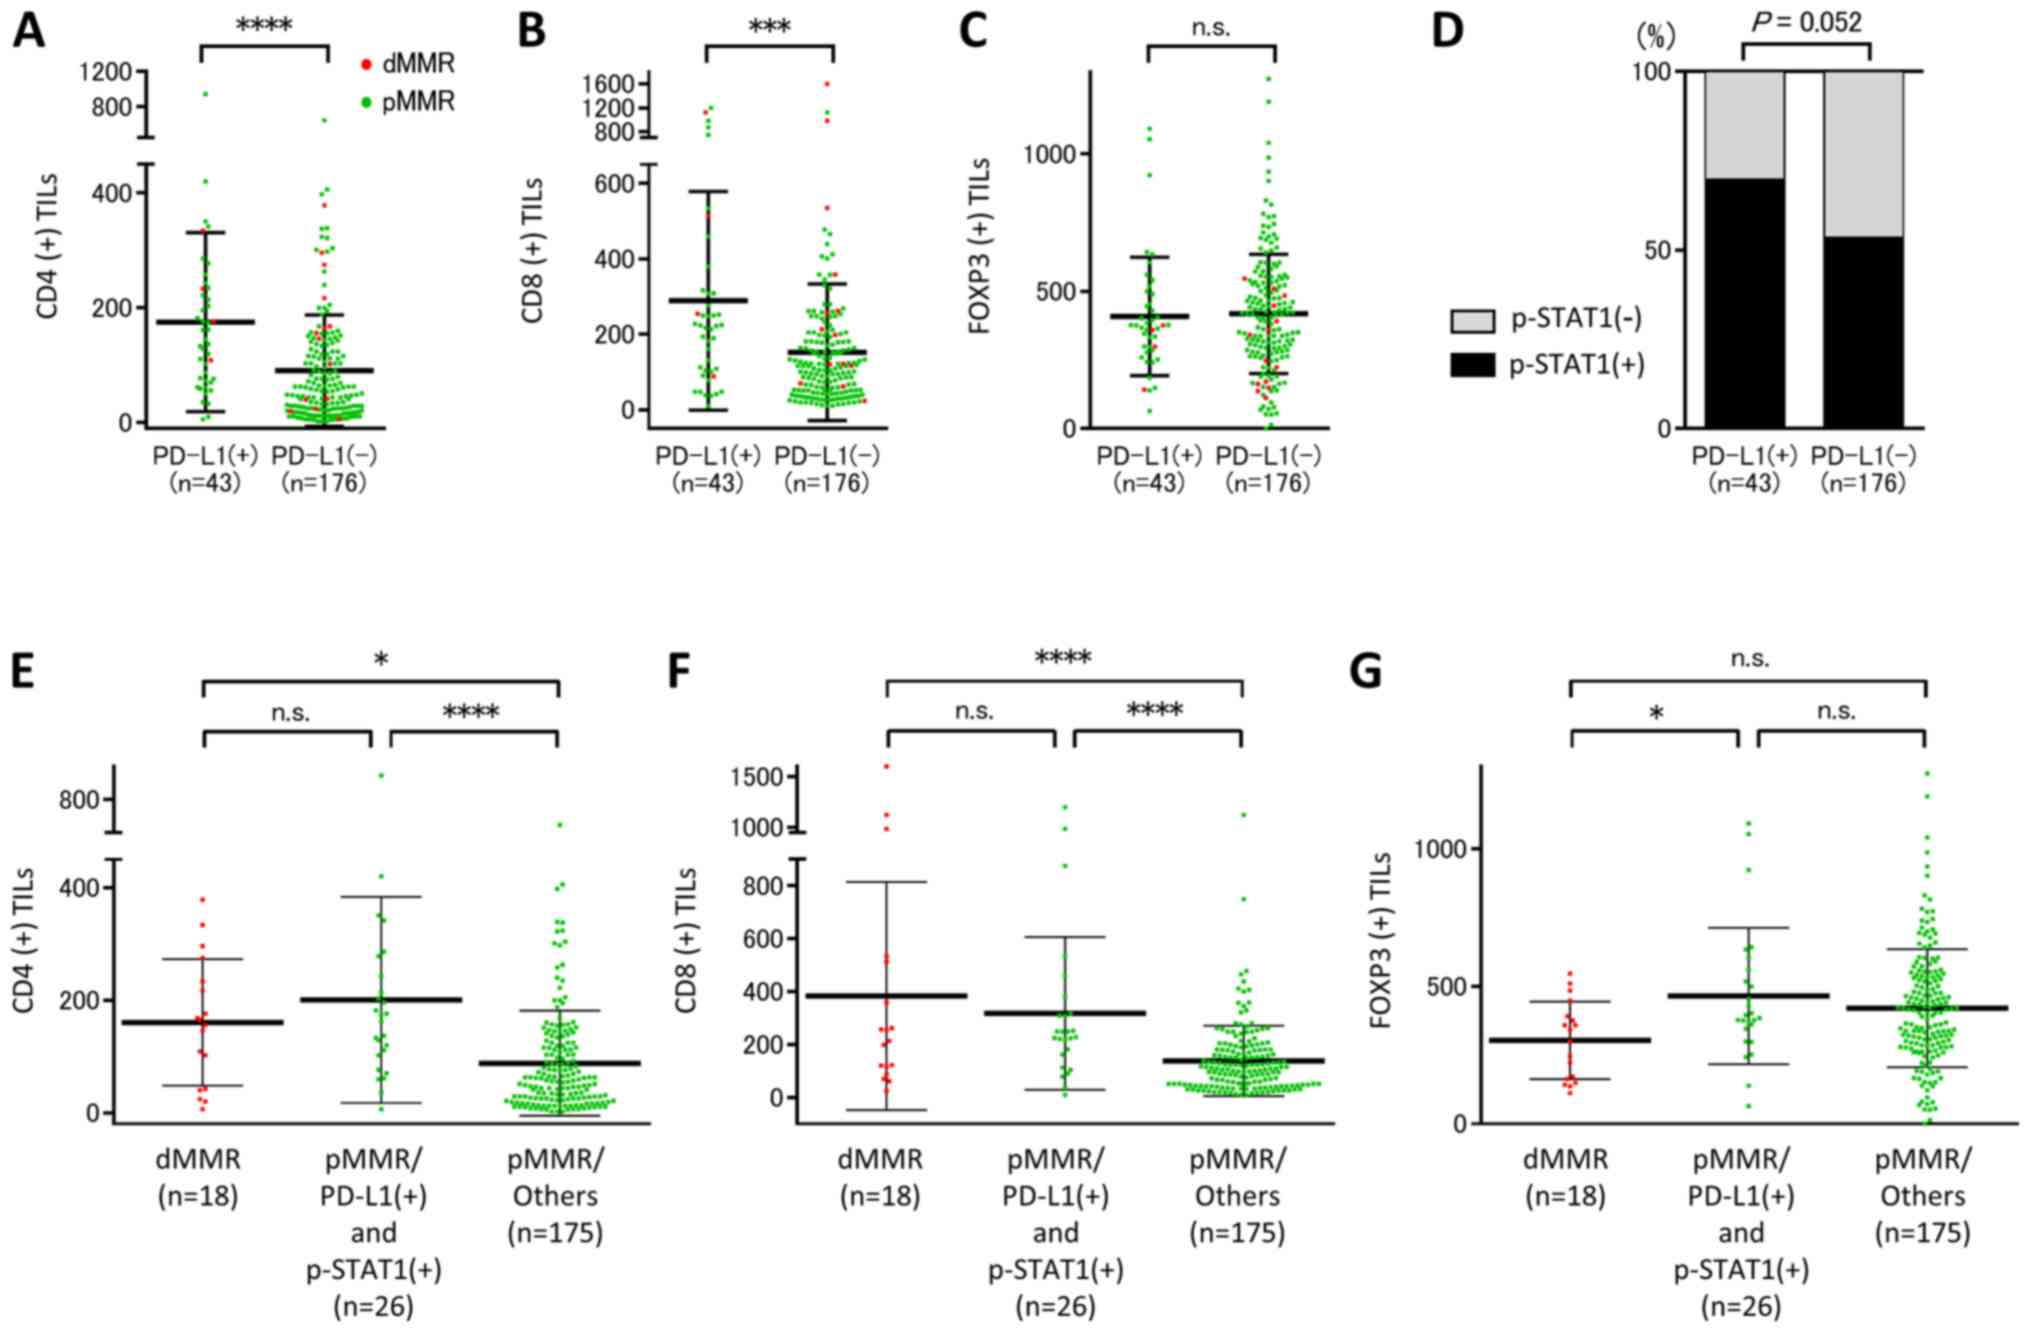 A Subset Of Patients With Mss Msi Low Colorectal Cancer Showed Increased Cd8 Tils Together With Up Regulated Ifn G